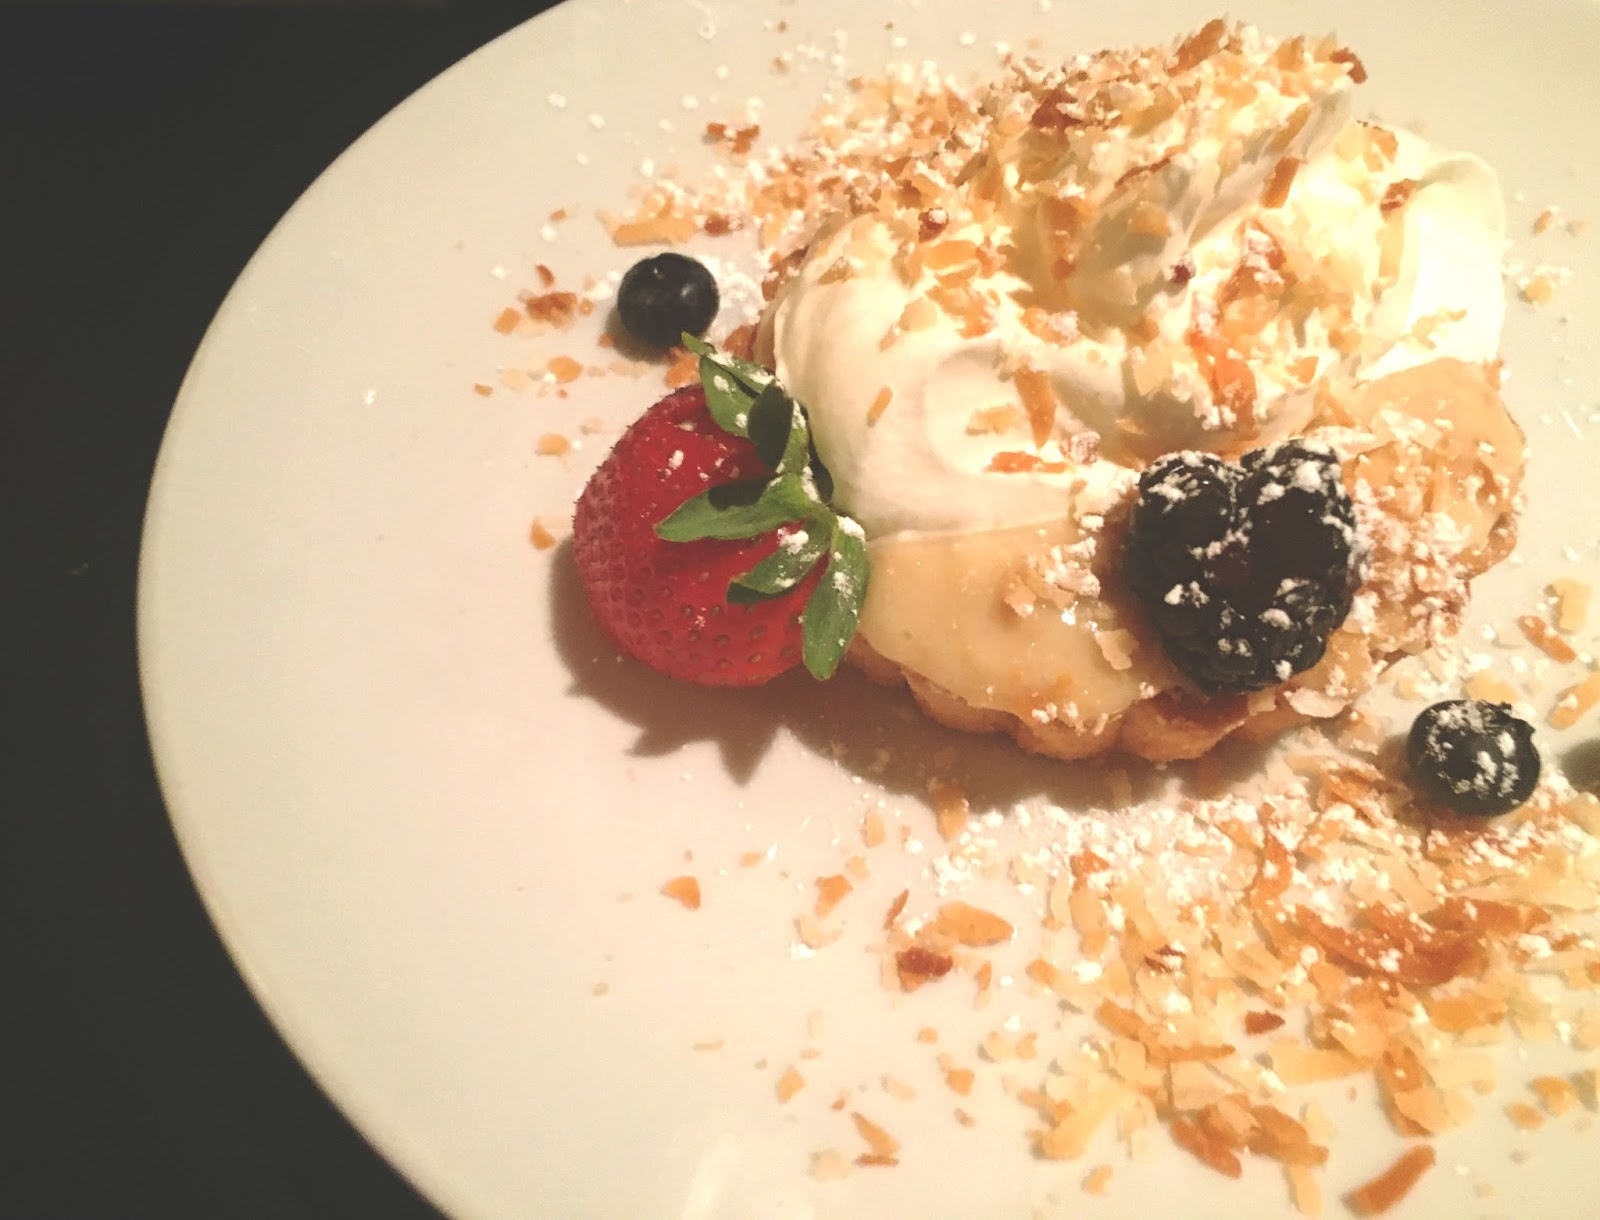 coconut cream pie at Shade, a restaurant in Houston, Texas